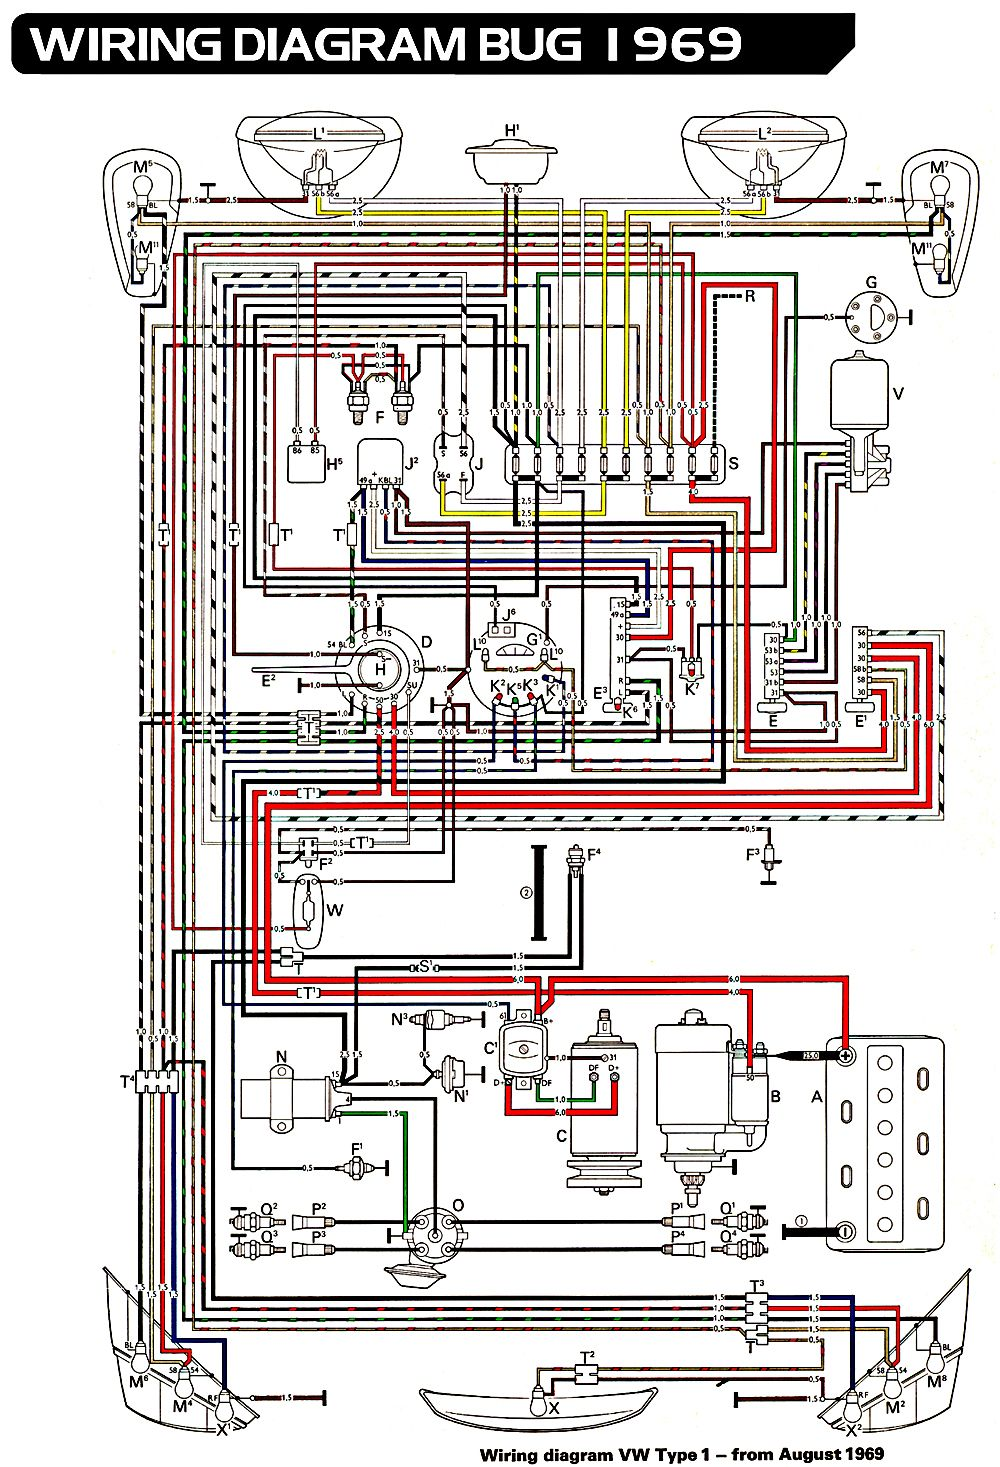 69 vw bug wiring harness diagrams schematics at 1967 beetle diagram 1969 vw beetle ignition coil wiring diagram 1969 vw beetle wiring diagram [ 1000 x 1467 Pixel ]